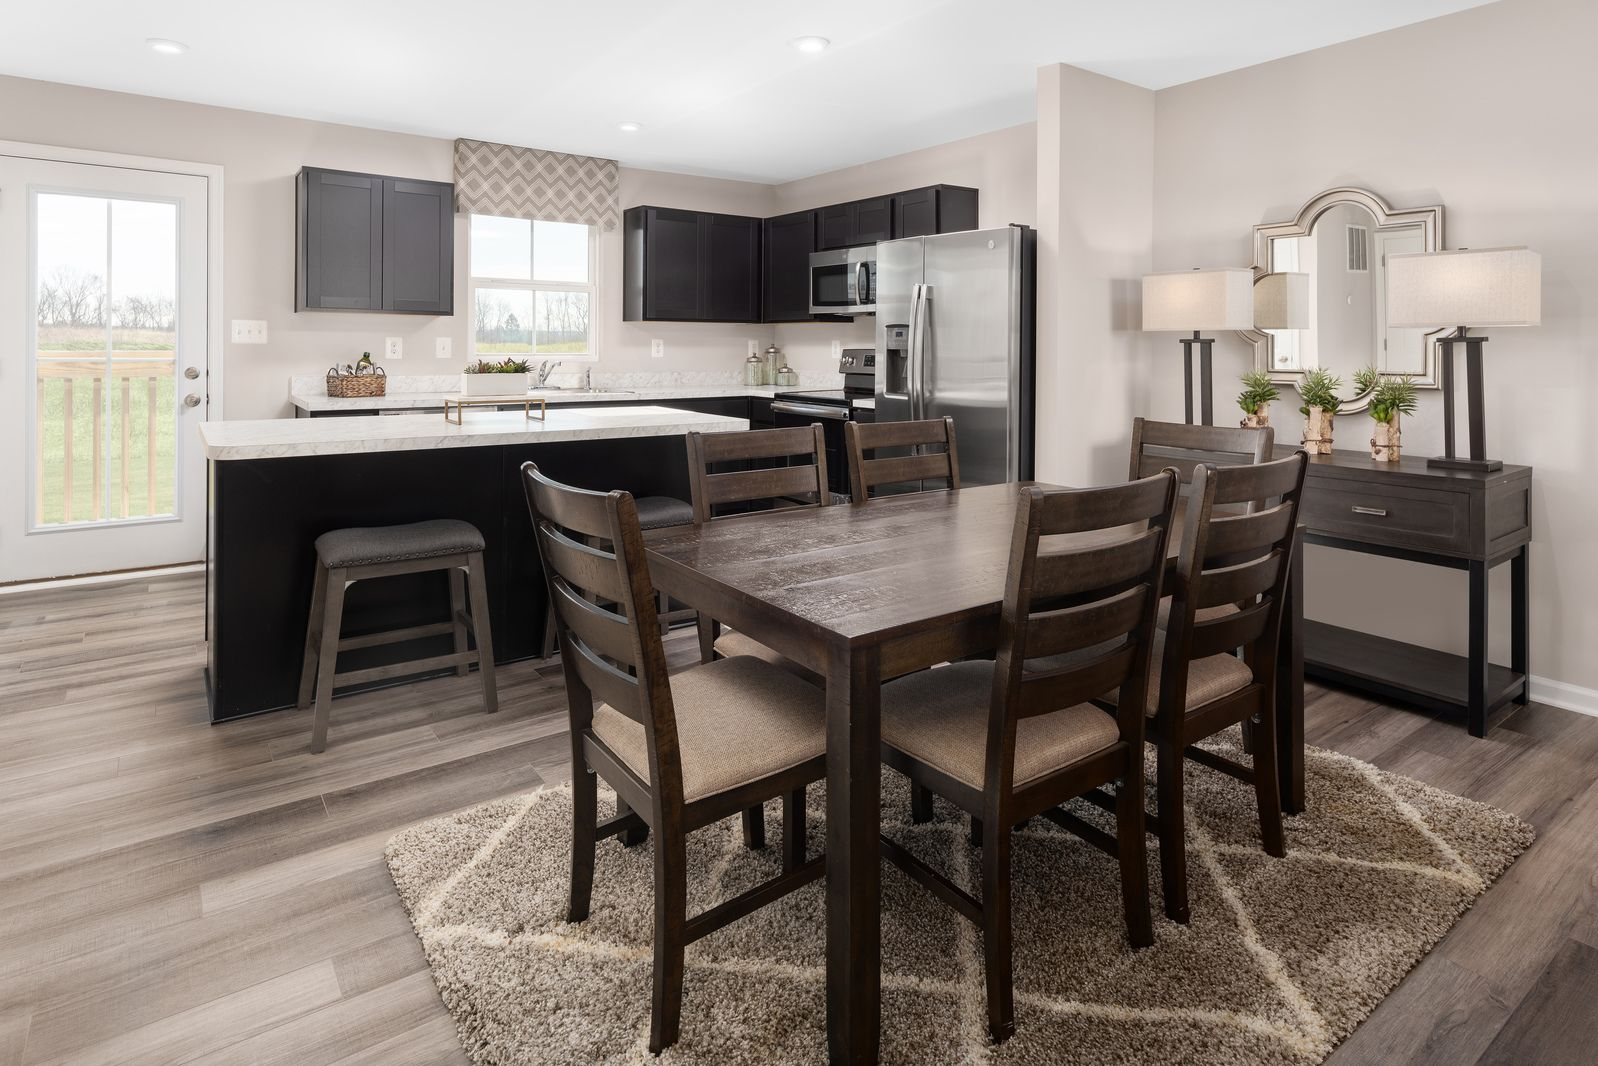 Kitchen featured in the Birch By Ryan Homes in Columbus, OH